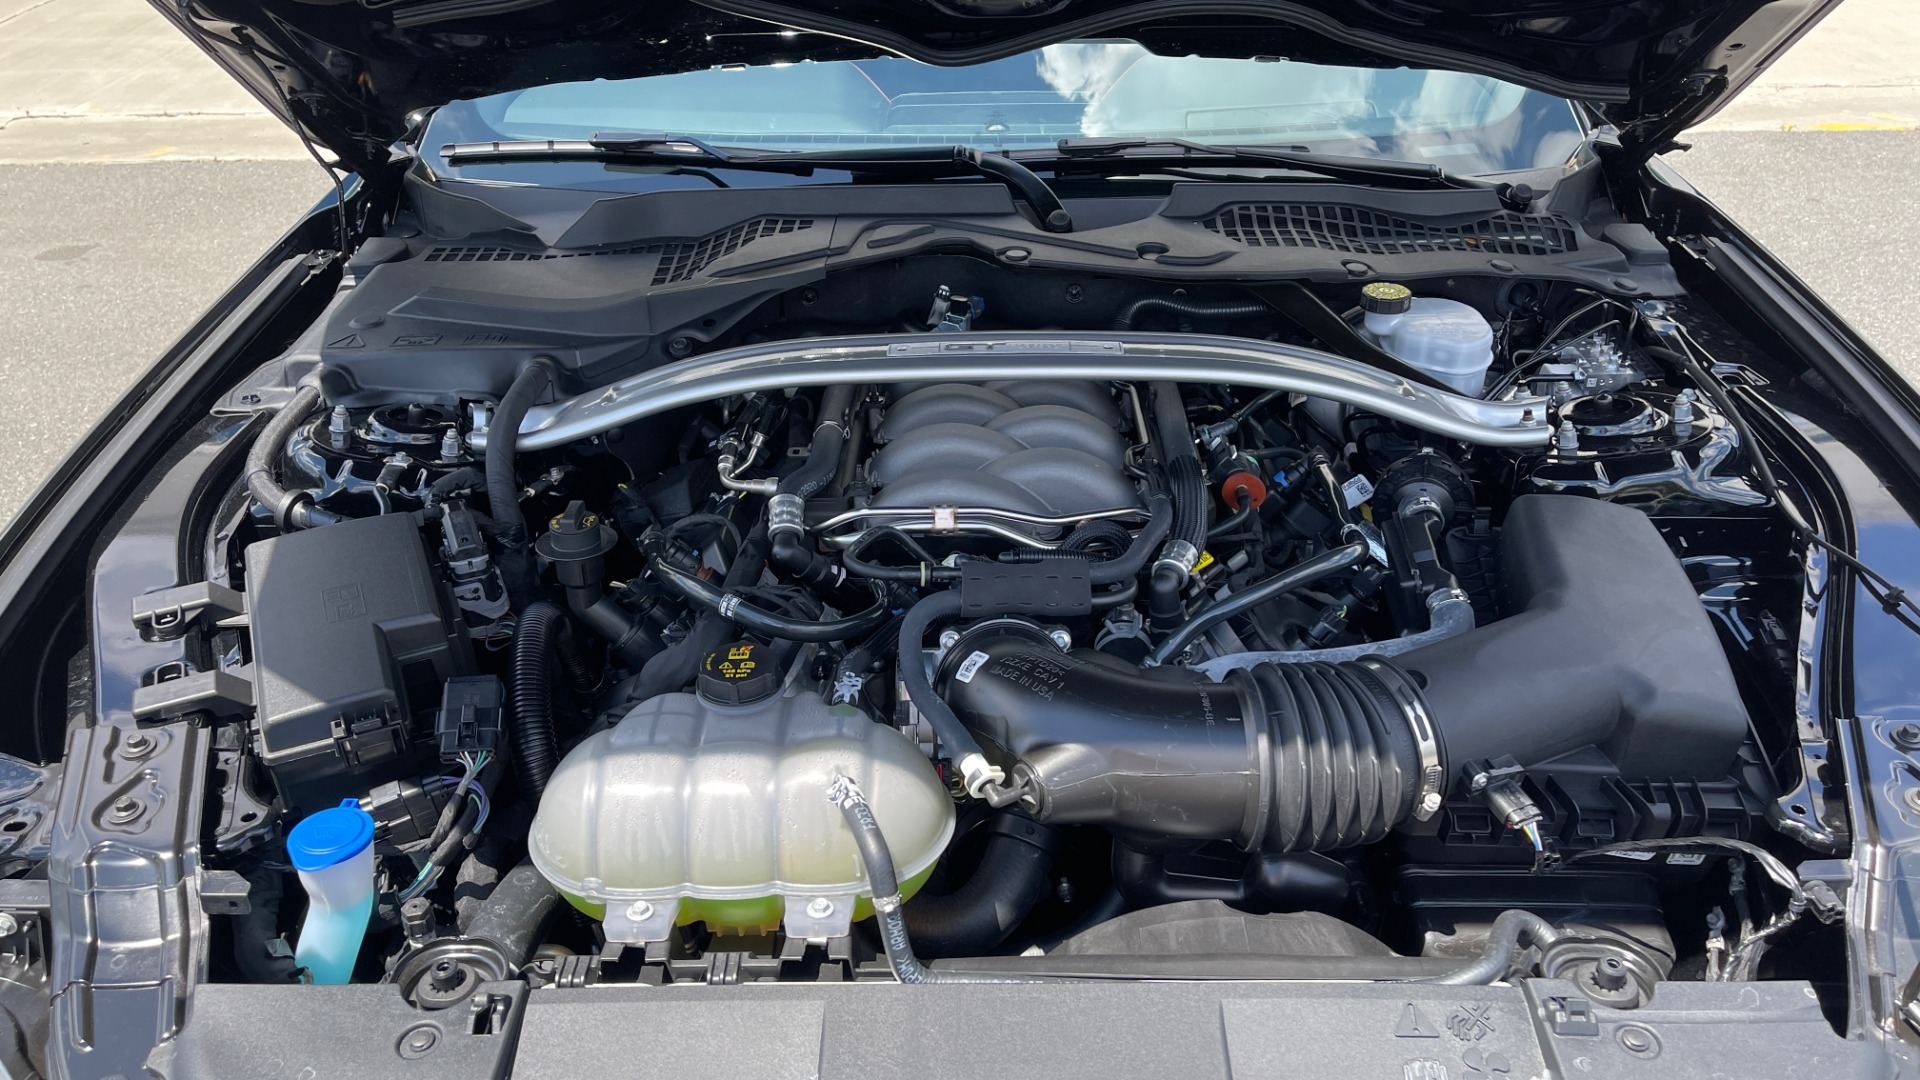 Used 2020 Ford MUSTANG GT PREMIUM / CALIFORNIA SPECIAL / 5.0L V8 / 6-SPD MAN for sale Sold at Formula Imports in Charlotte NC 28227 23